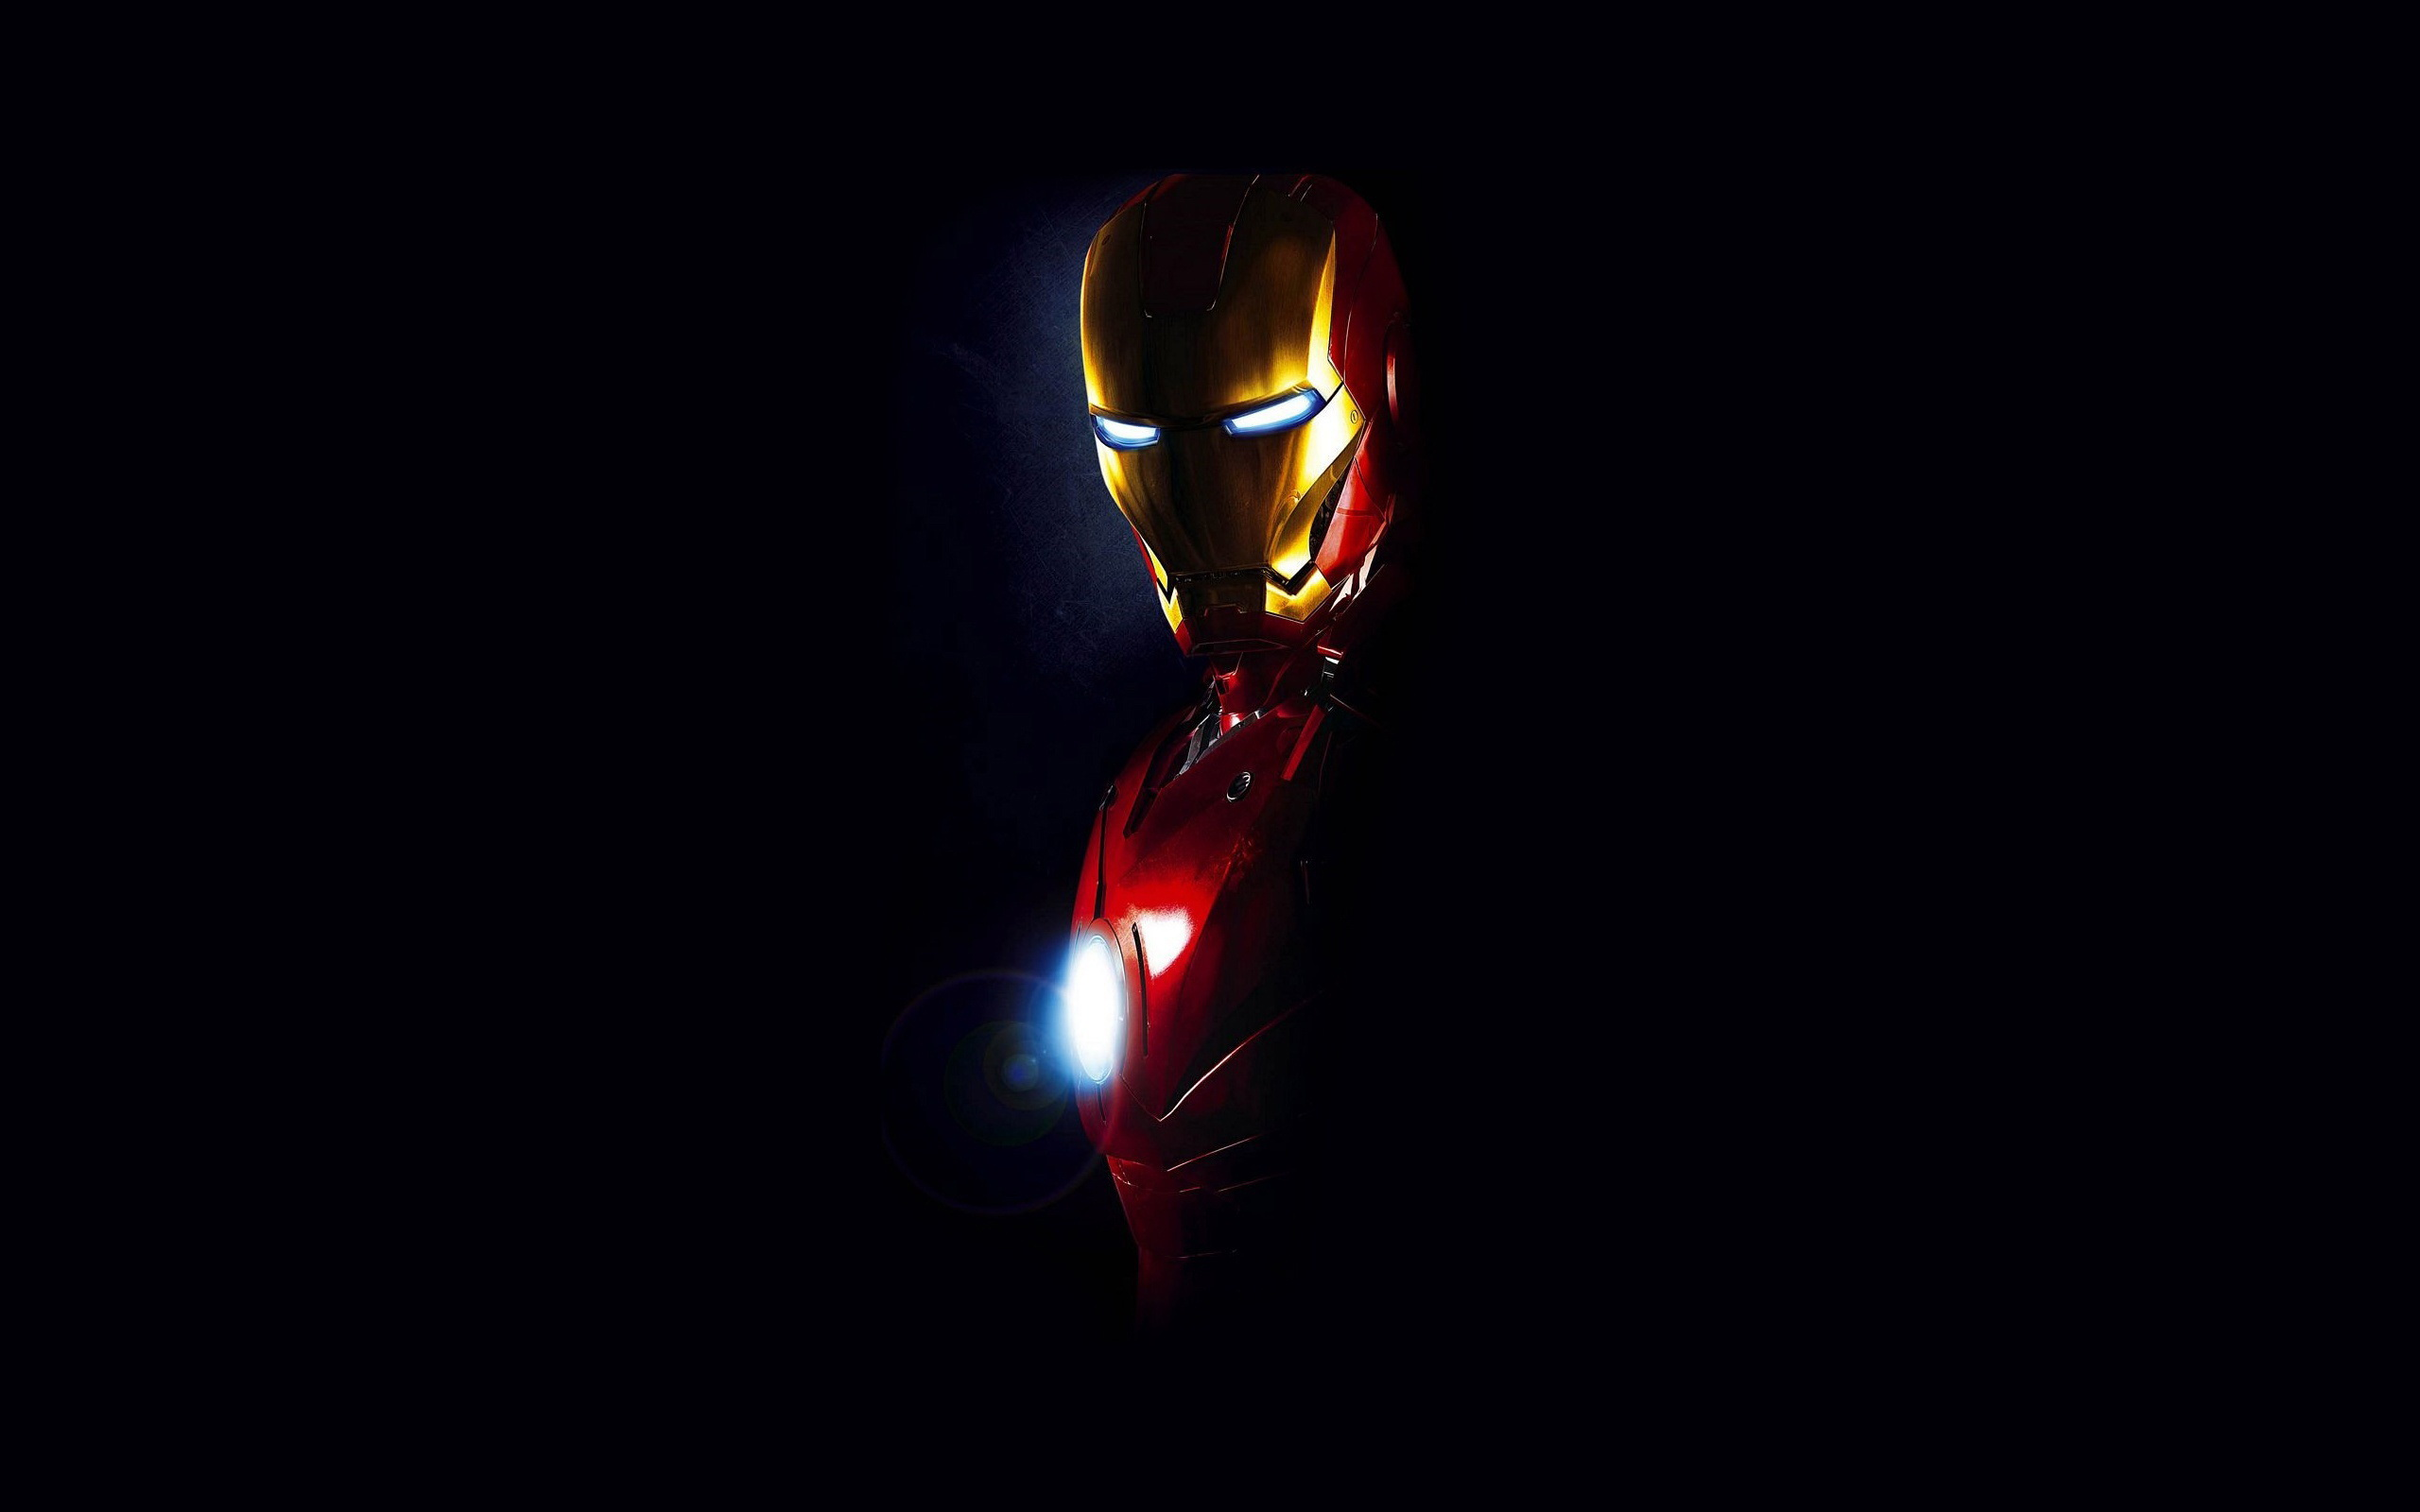 Iron Man Full HD Fondo de Pantalla and Fondo de Escritorio 2560x1600